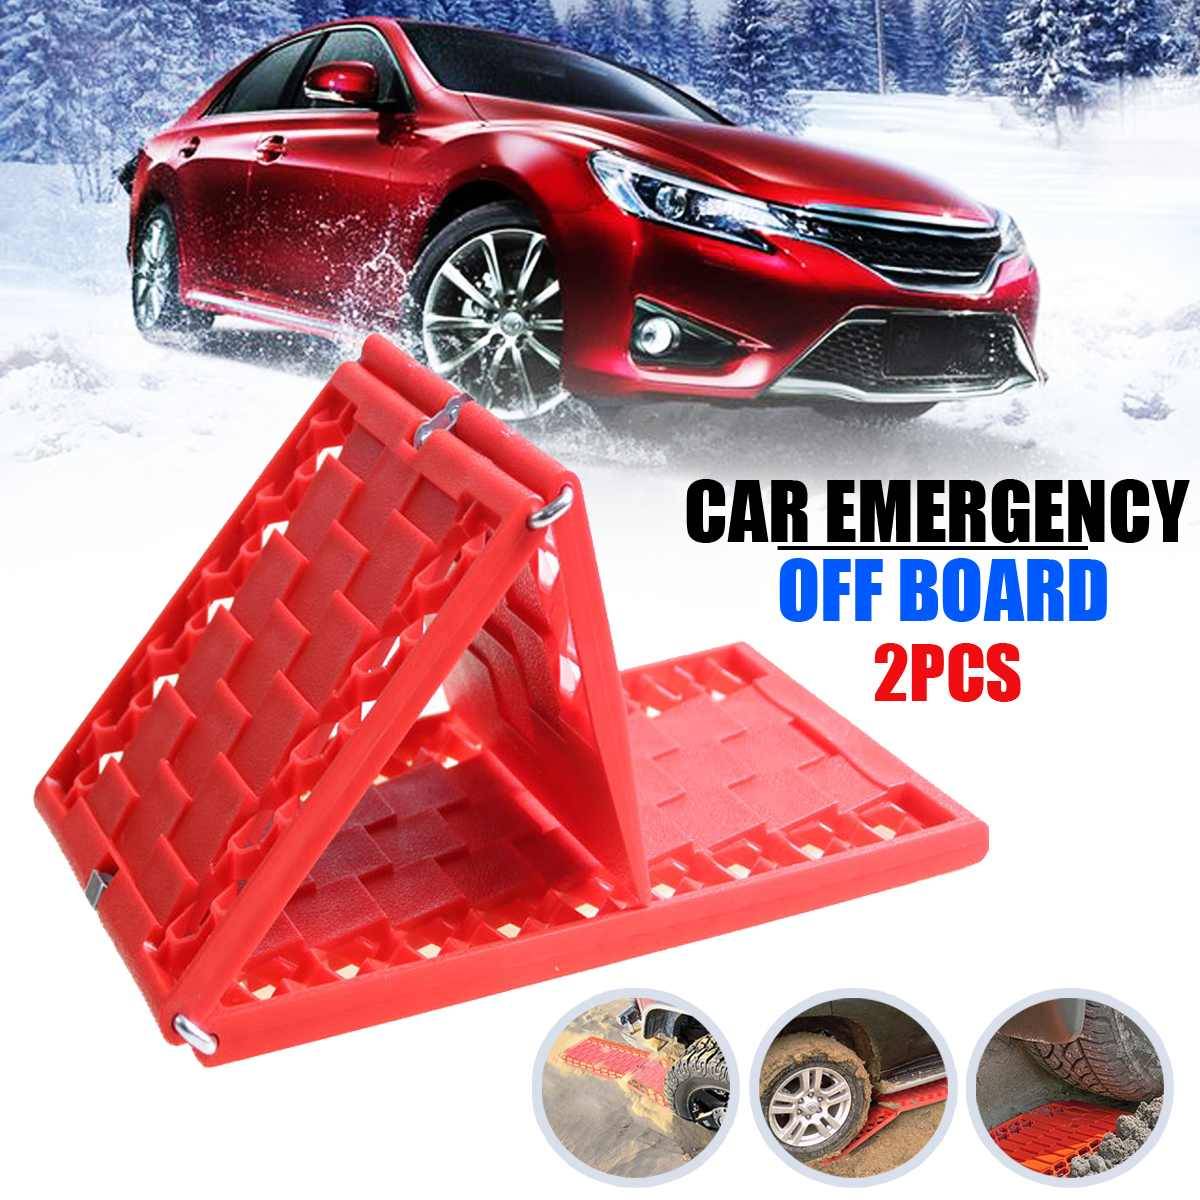 Frugal 2pcs/set Tyre Grip Tracks Mats Car Security Snow Mud Sand Rescue Escaper Traction Tracks Mats For Emergency Relief Solid Firm The Latest Fashion Winter Goods